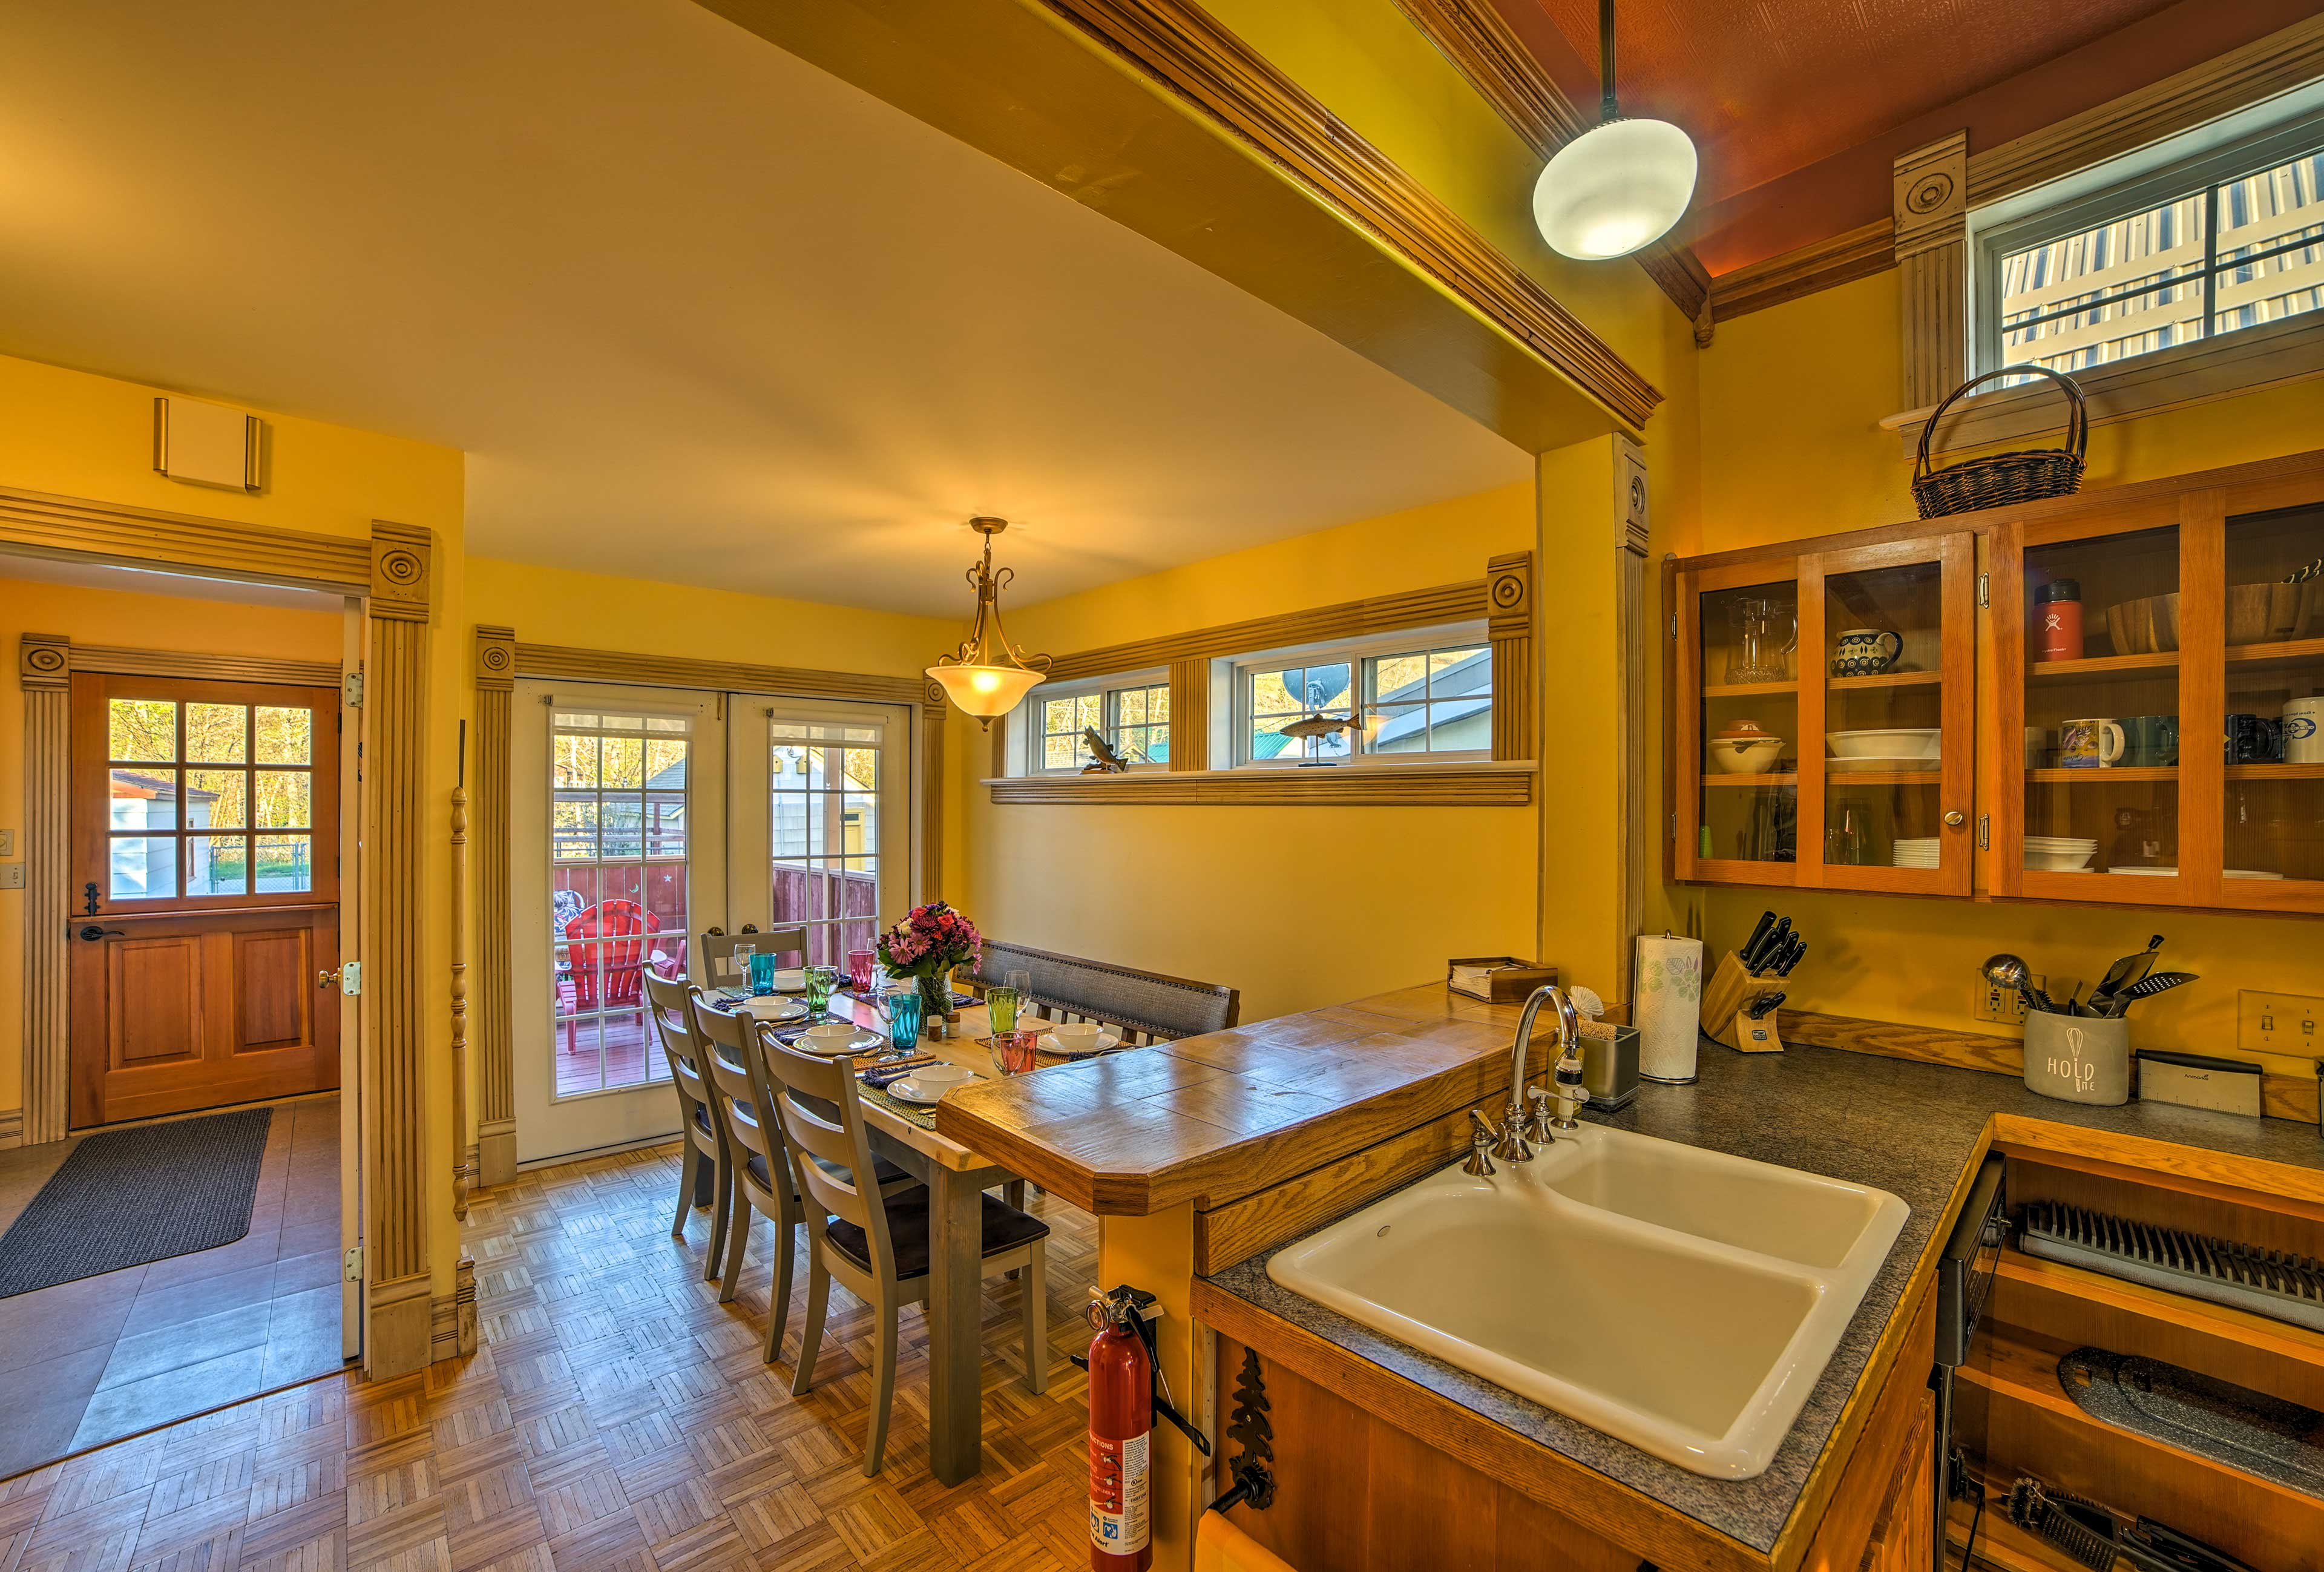 Wash up in the farmhouse-style sink after dinner at the large dining table.